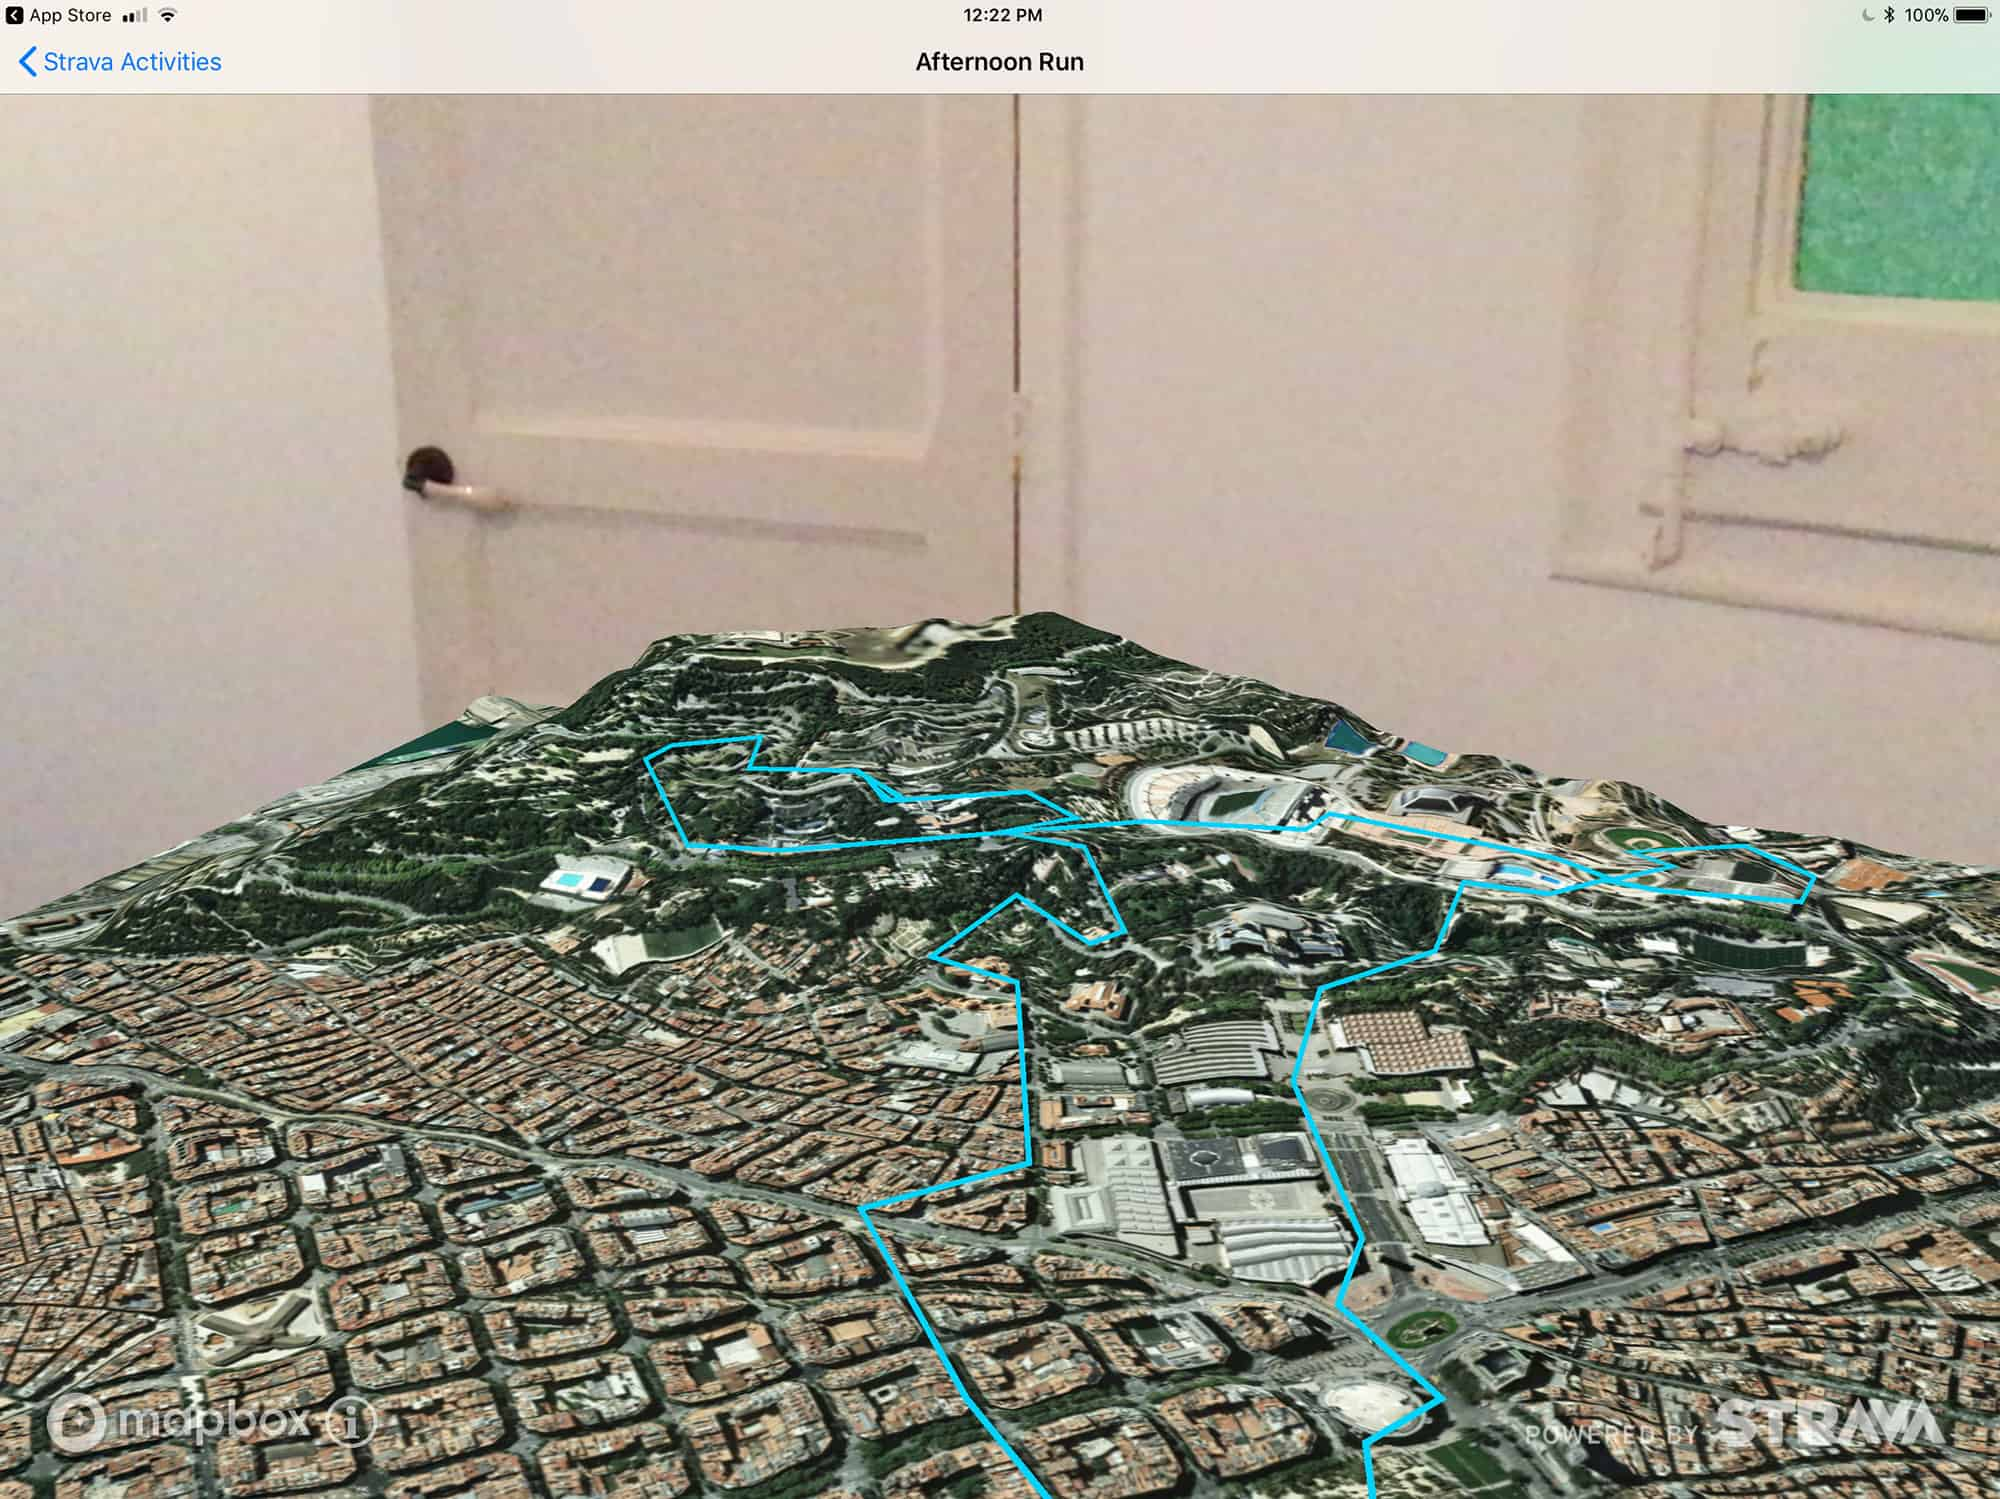 Fitness AR lets you visualize your hill running routes in 3D with augmented reality